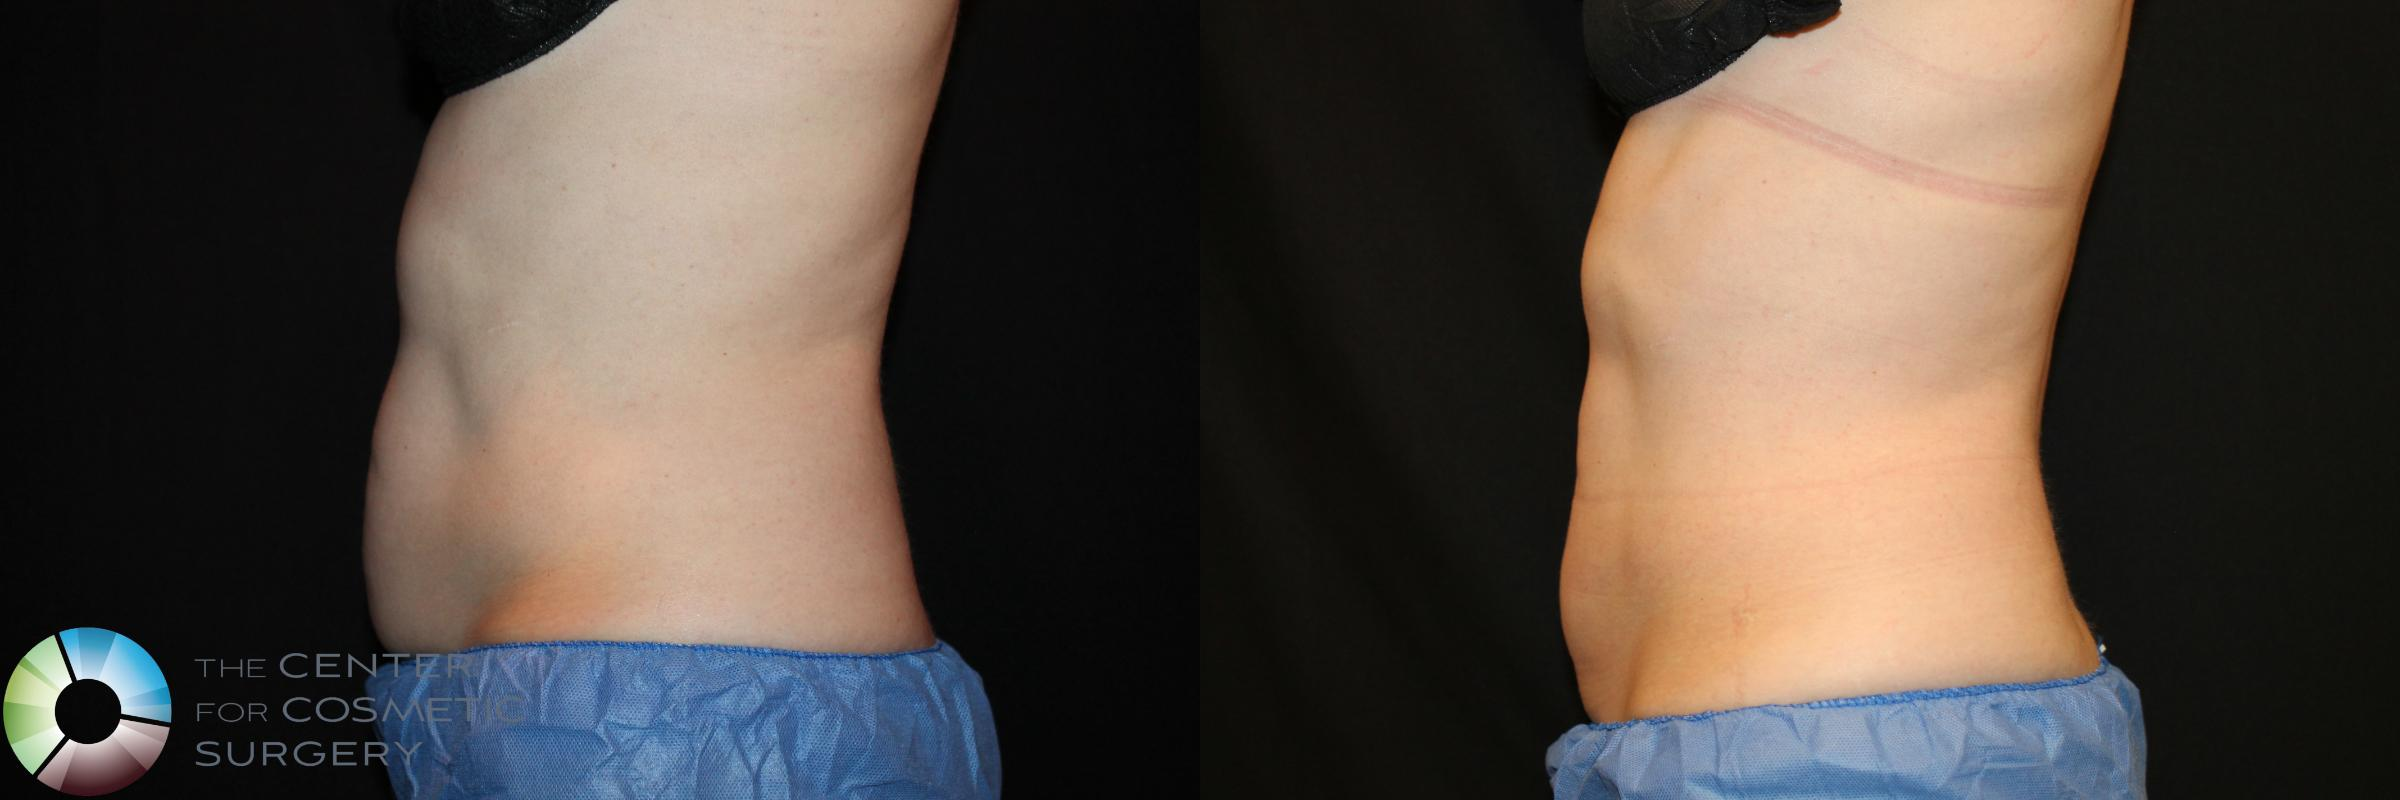 CoolSculpting Case 736 Before & After View #1 | Golden, CO | The Center for Cosmetic Surgery